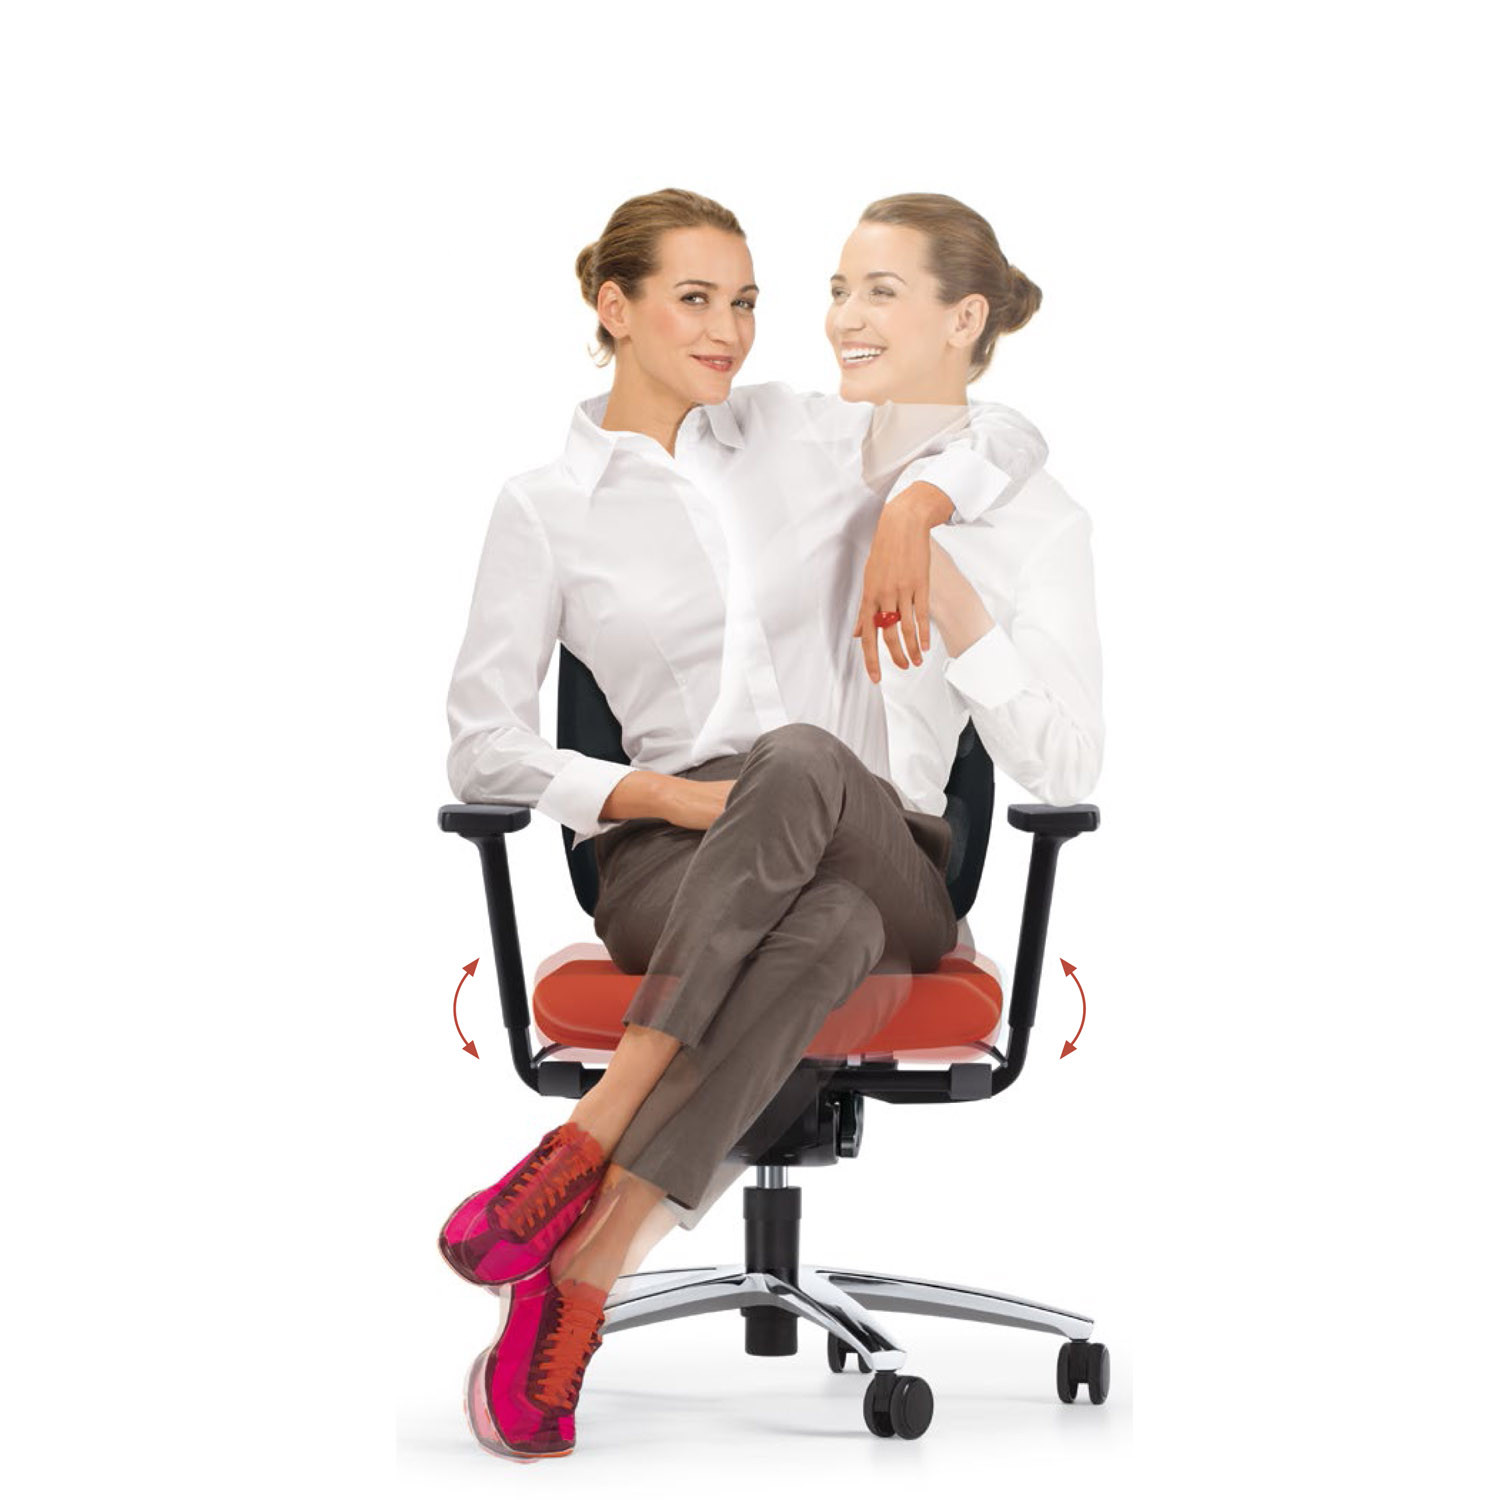 Swing Up Ergonomic Office Chair